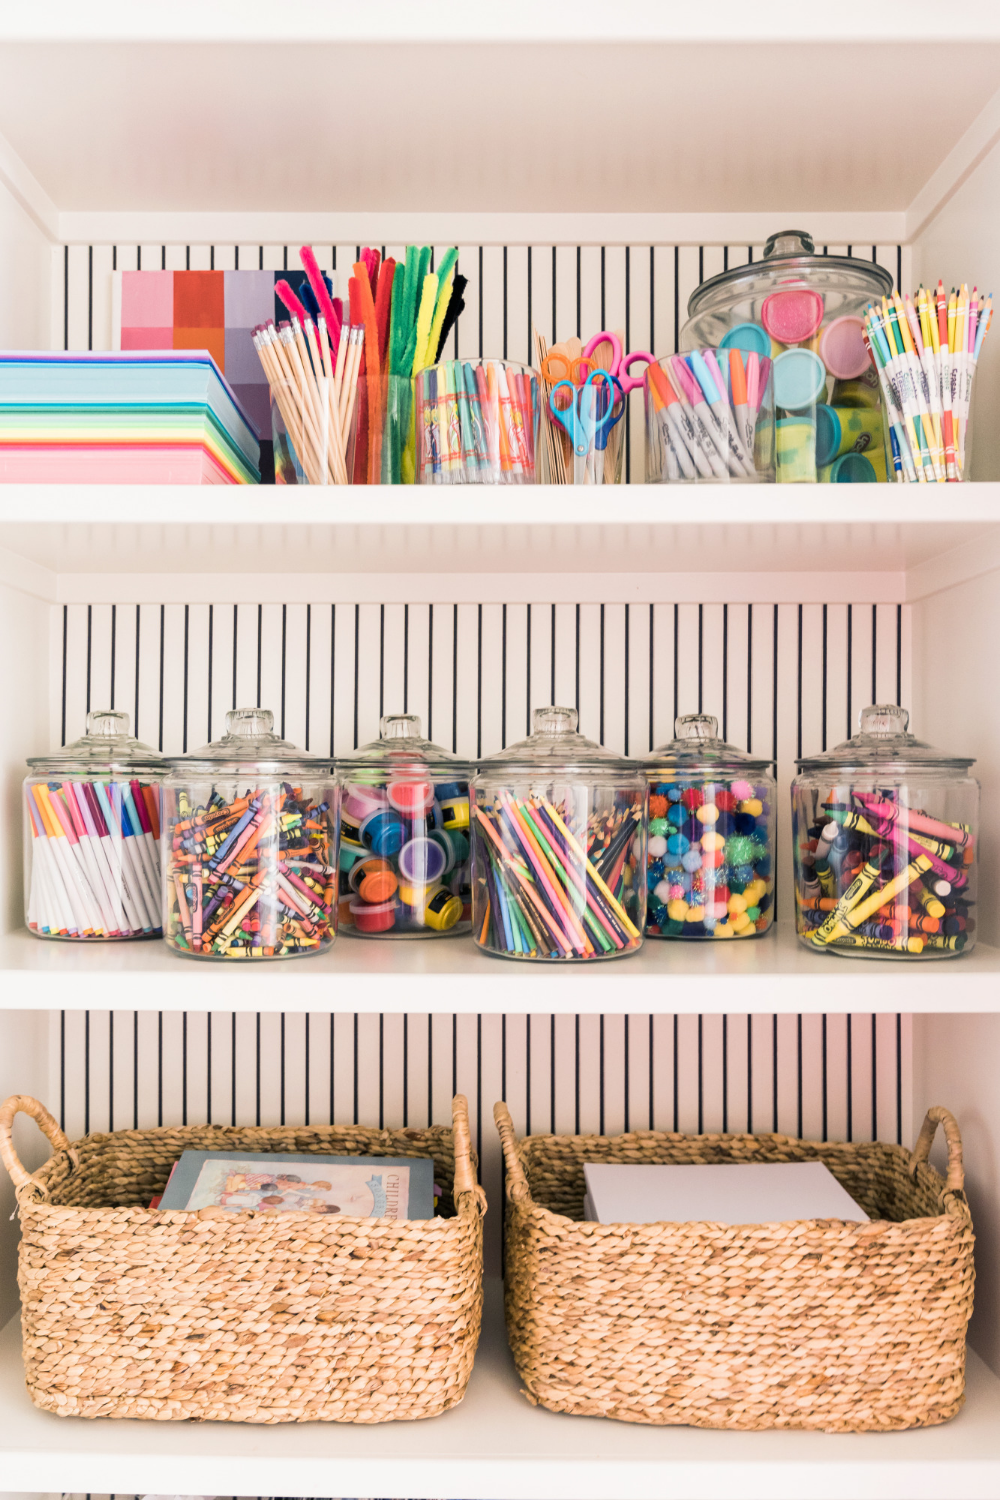 My Craft Closet… – Rach Parcell